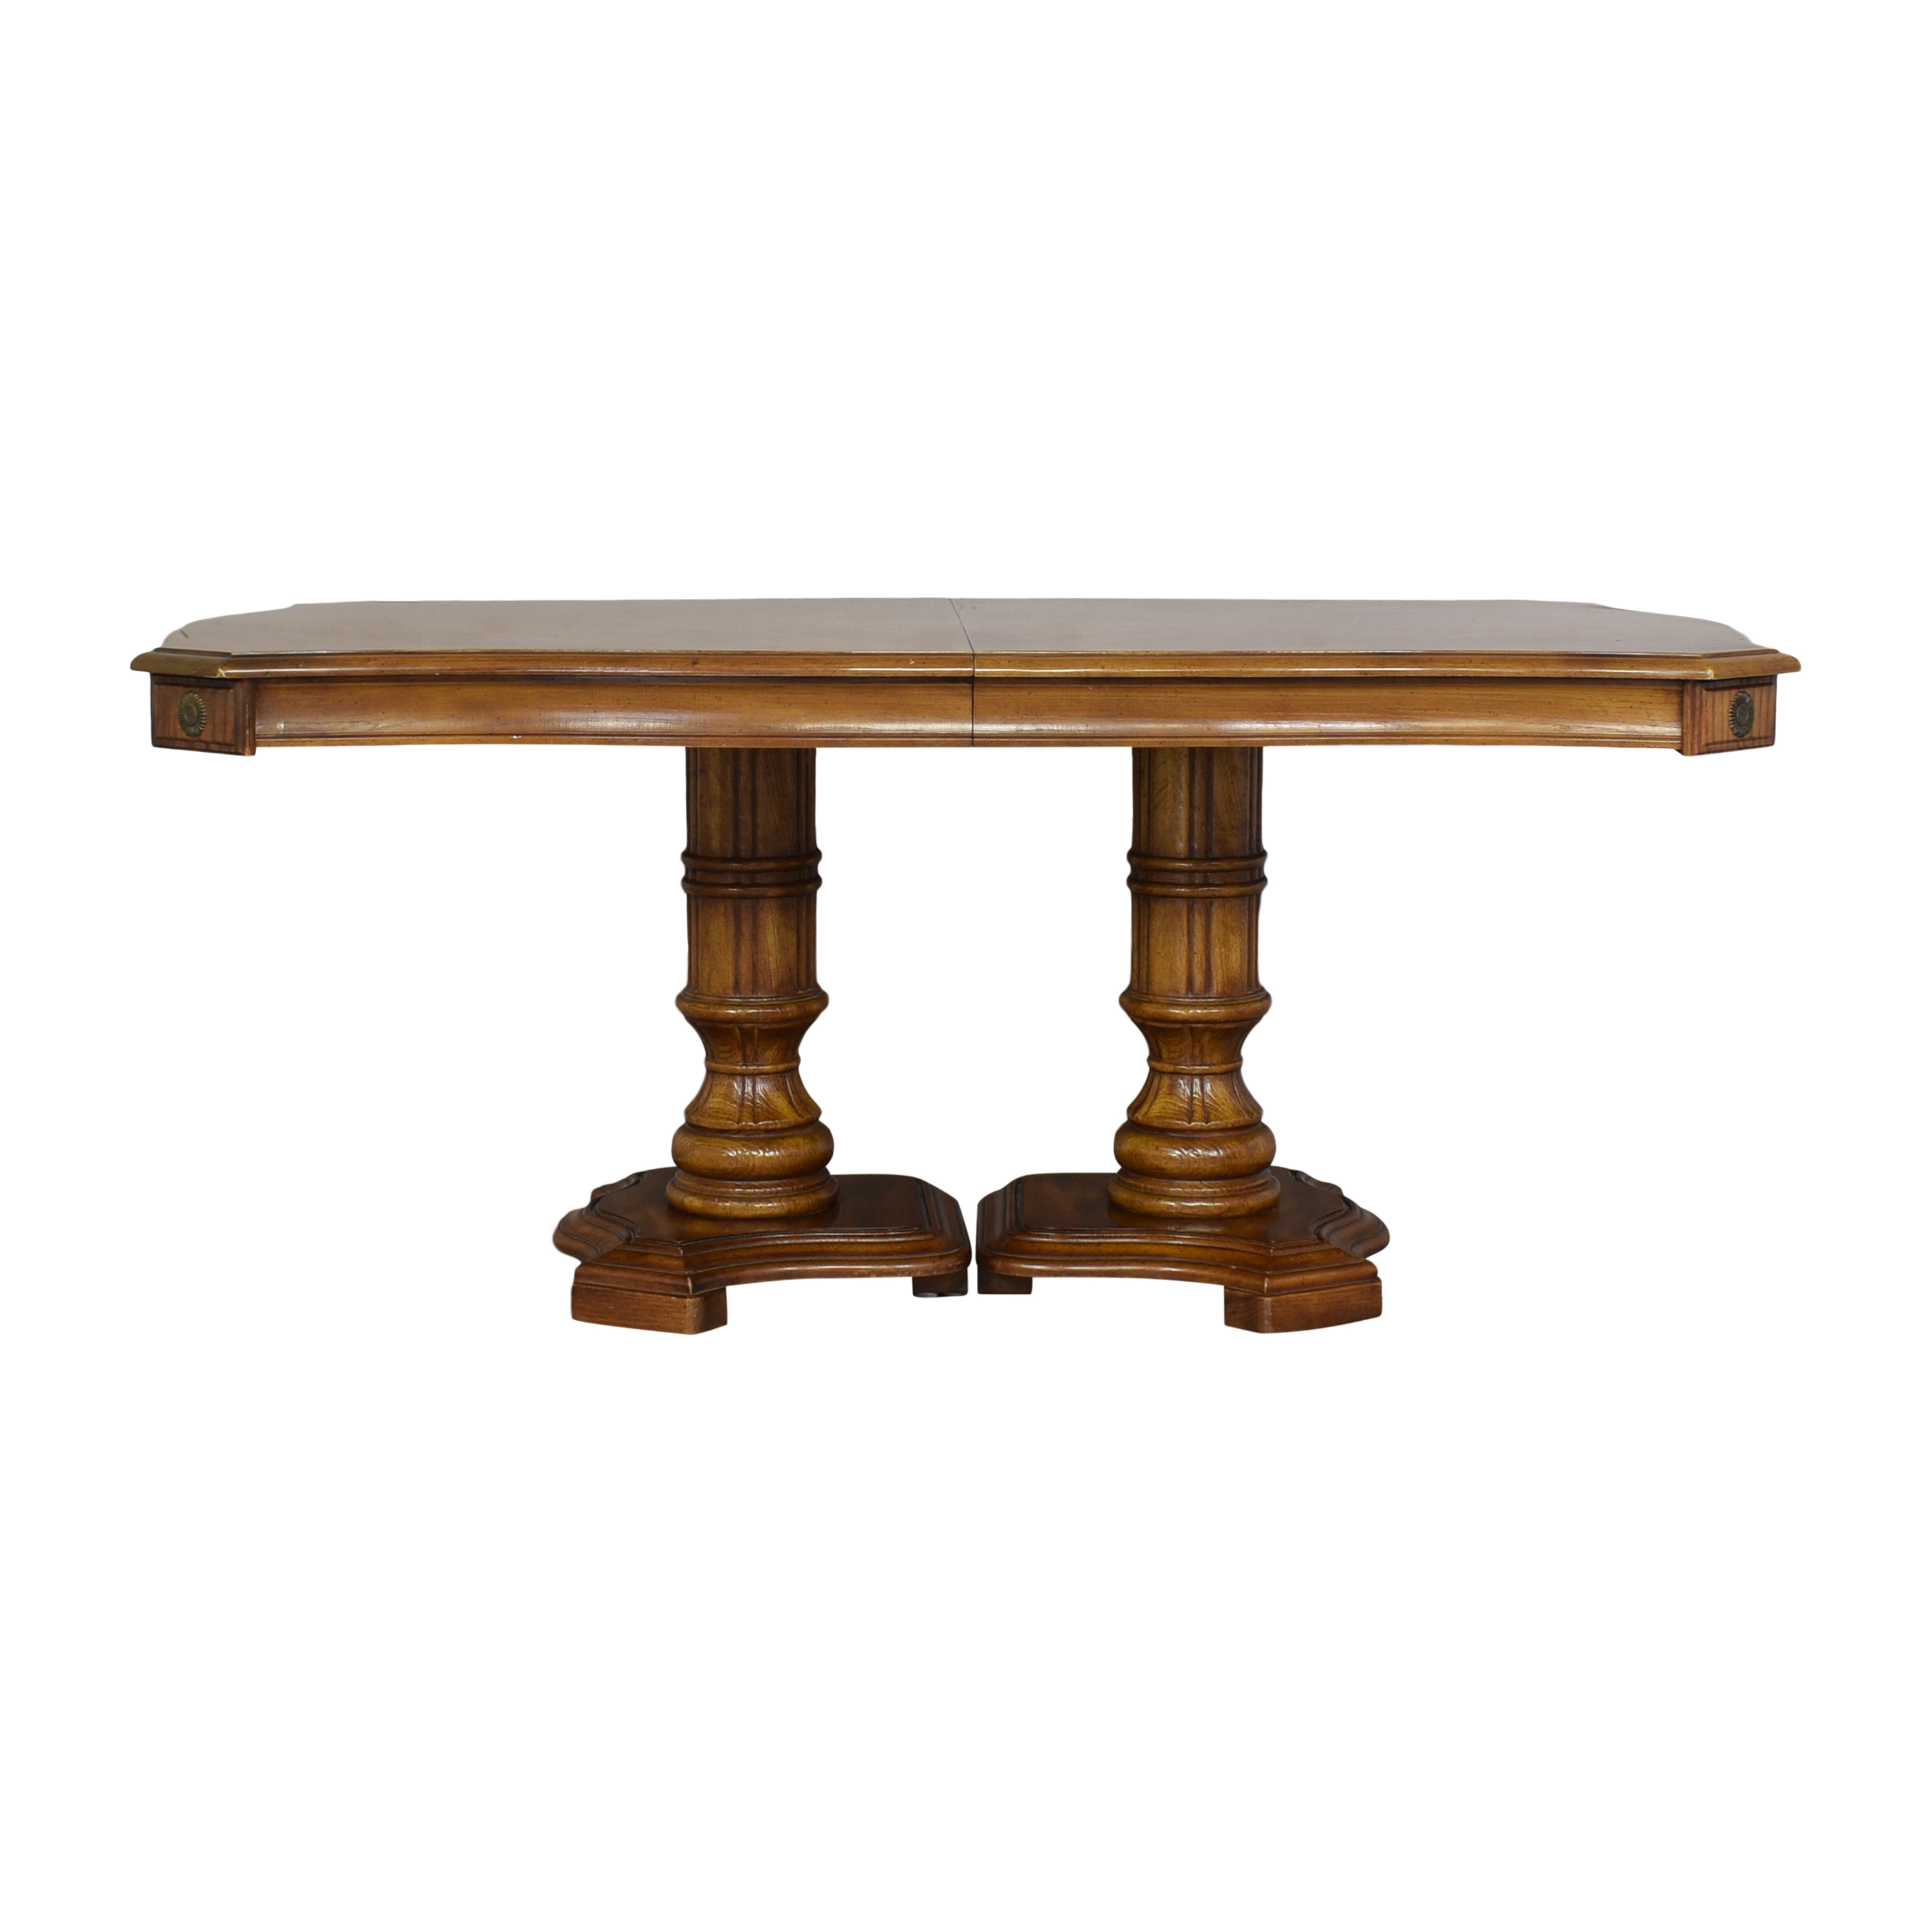 Stanley Furniture Stanley Double Pedestal Dining Table pa